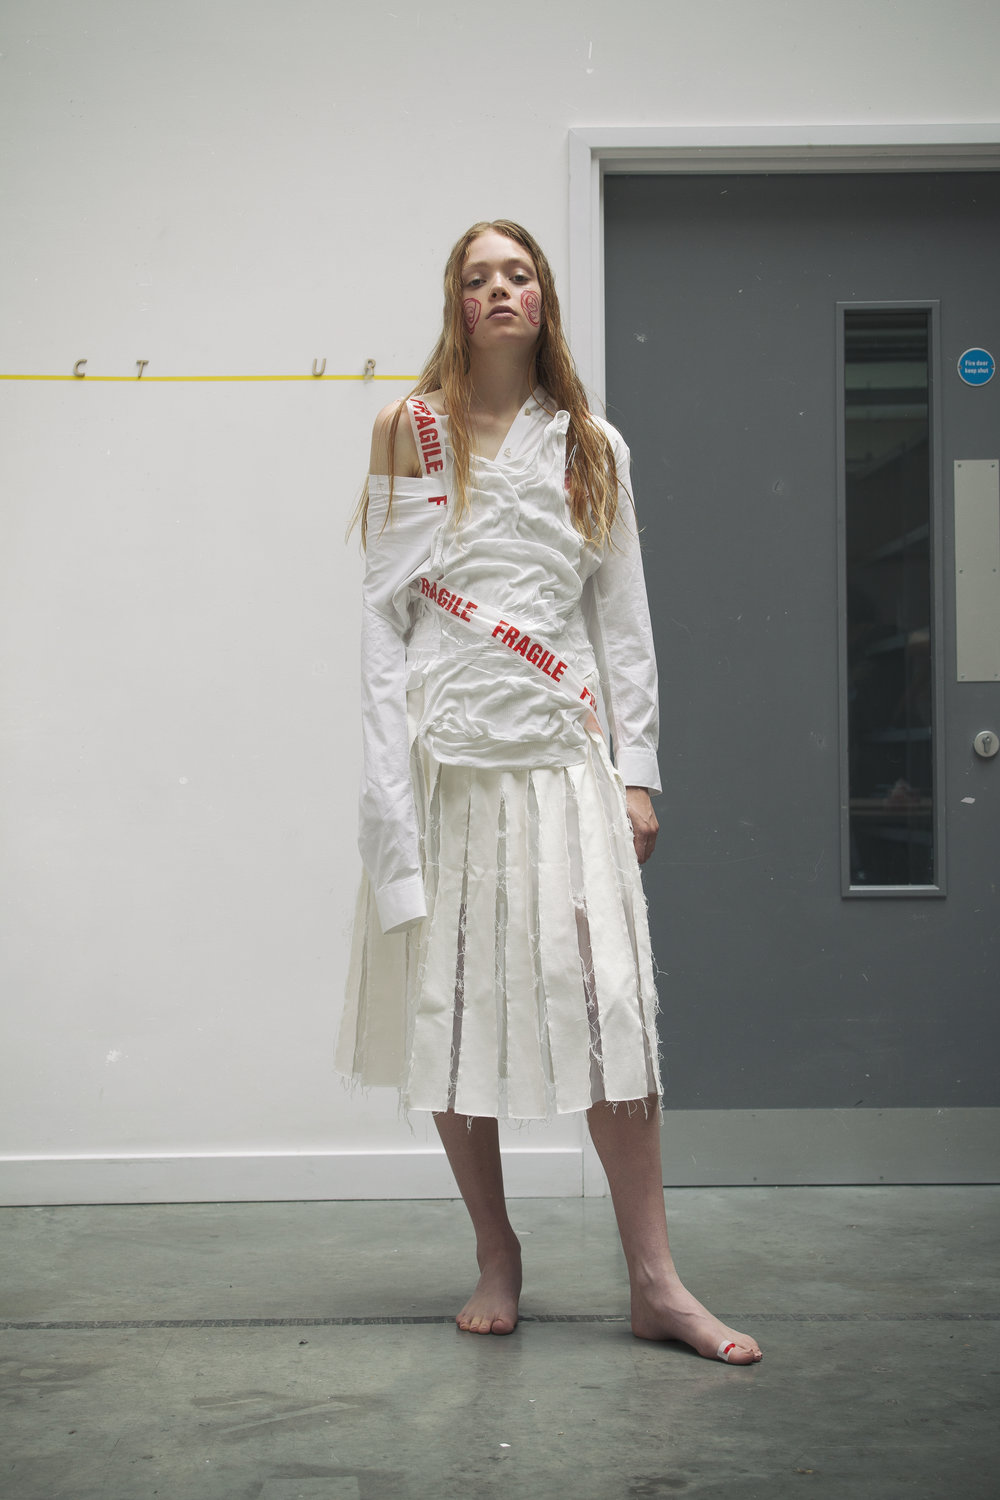 Shirt  ALEXACHUNG    Skirt  Regina Pyo at Young British Designers